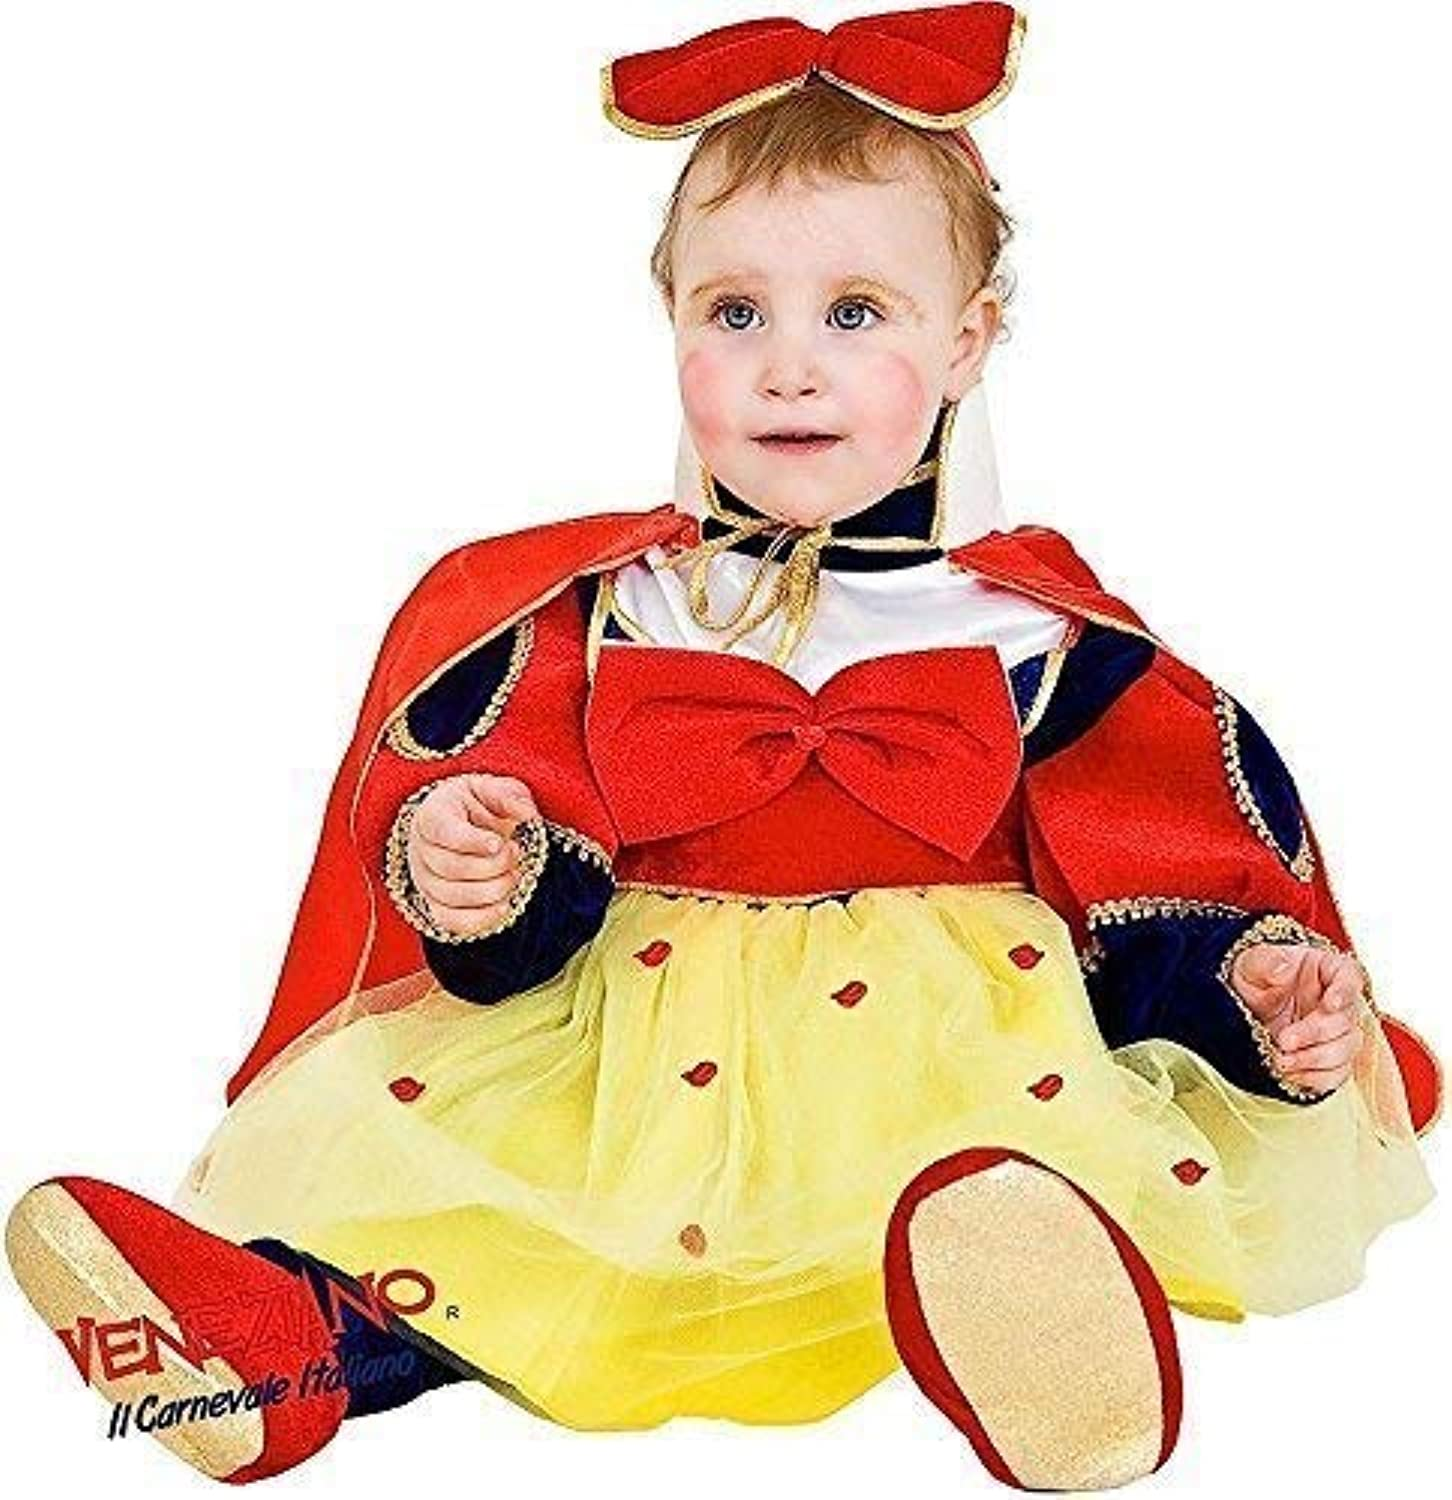 Italian Made Toddler Girls Snow White World Book Day Week Fairytale Cartoon Fancy Dress Costume Outfit 23 Years